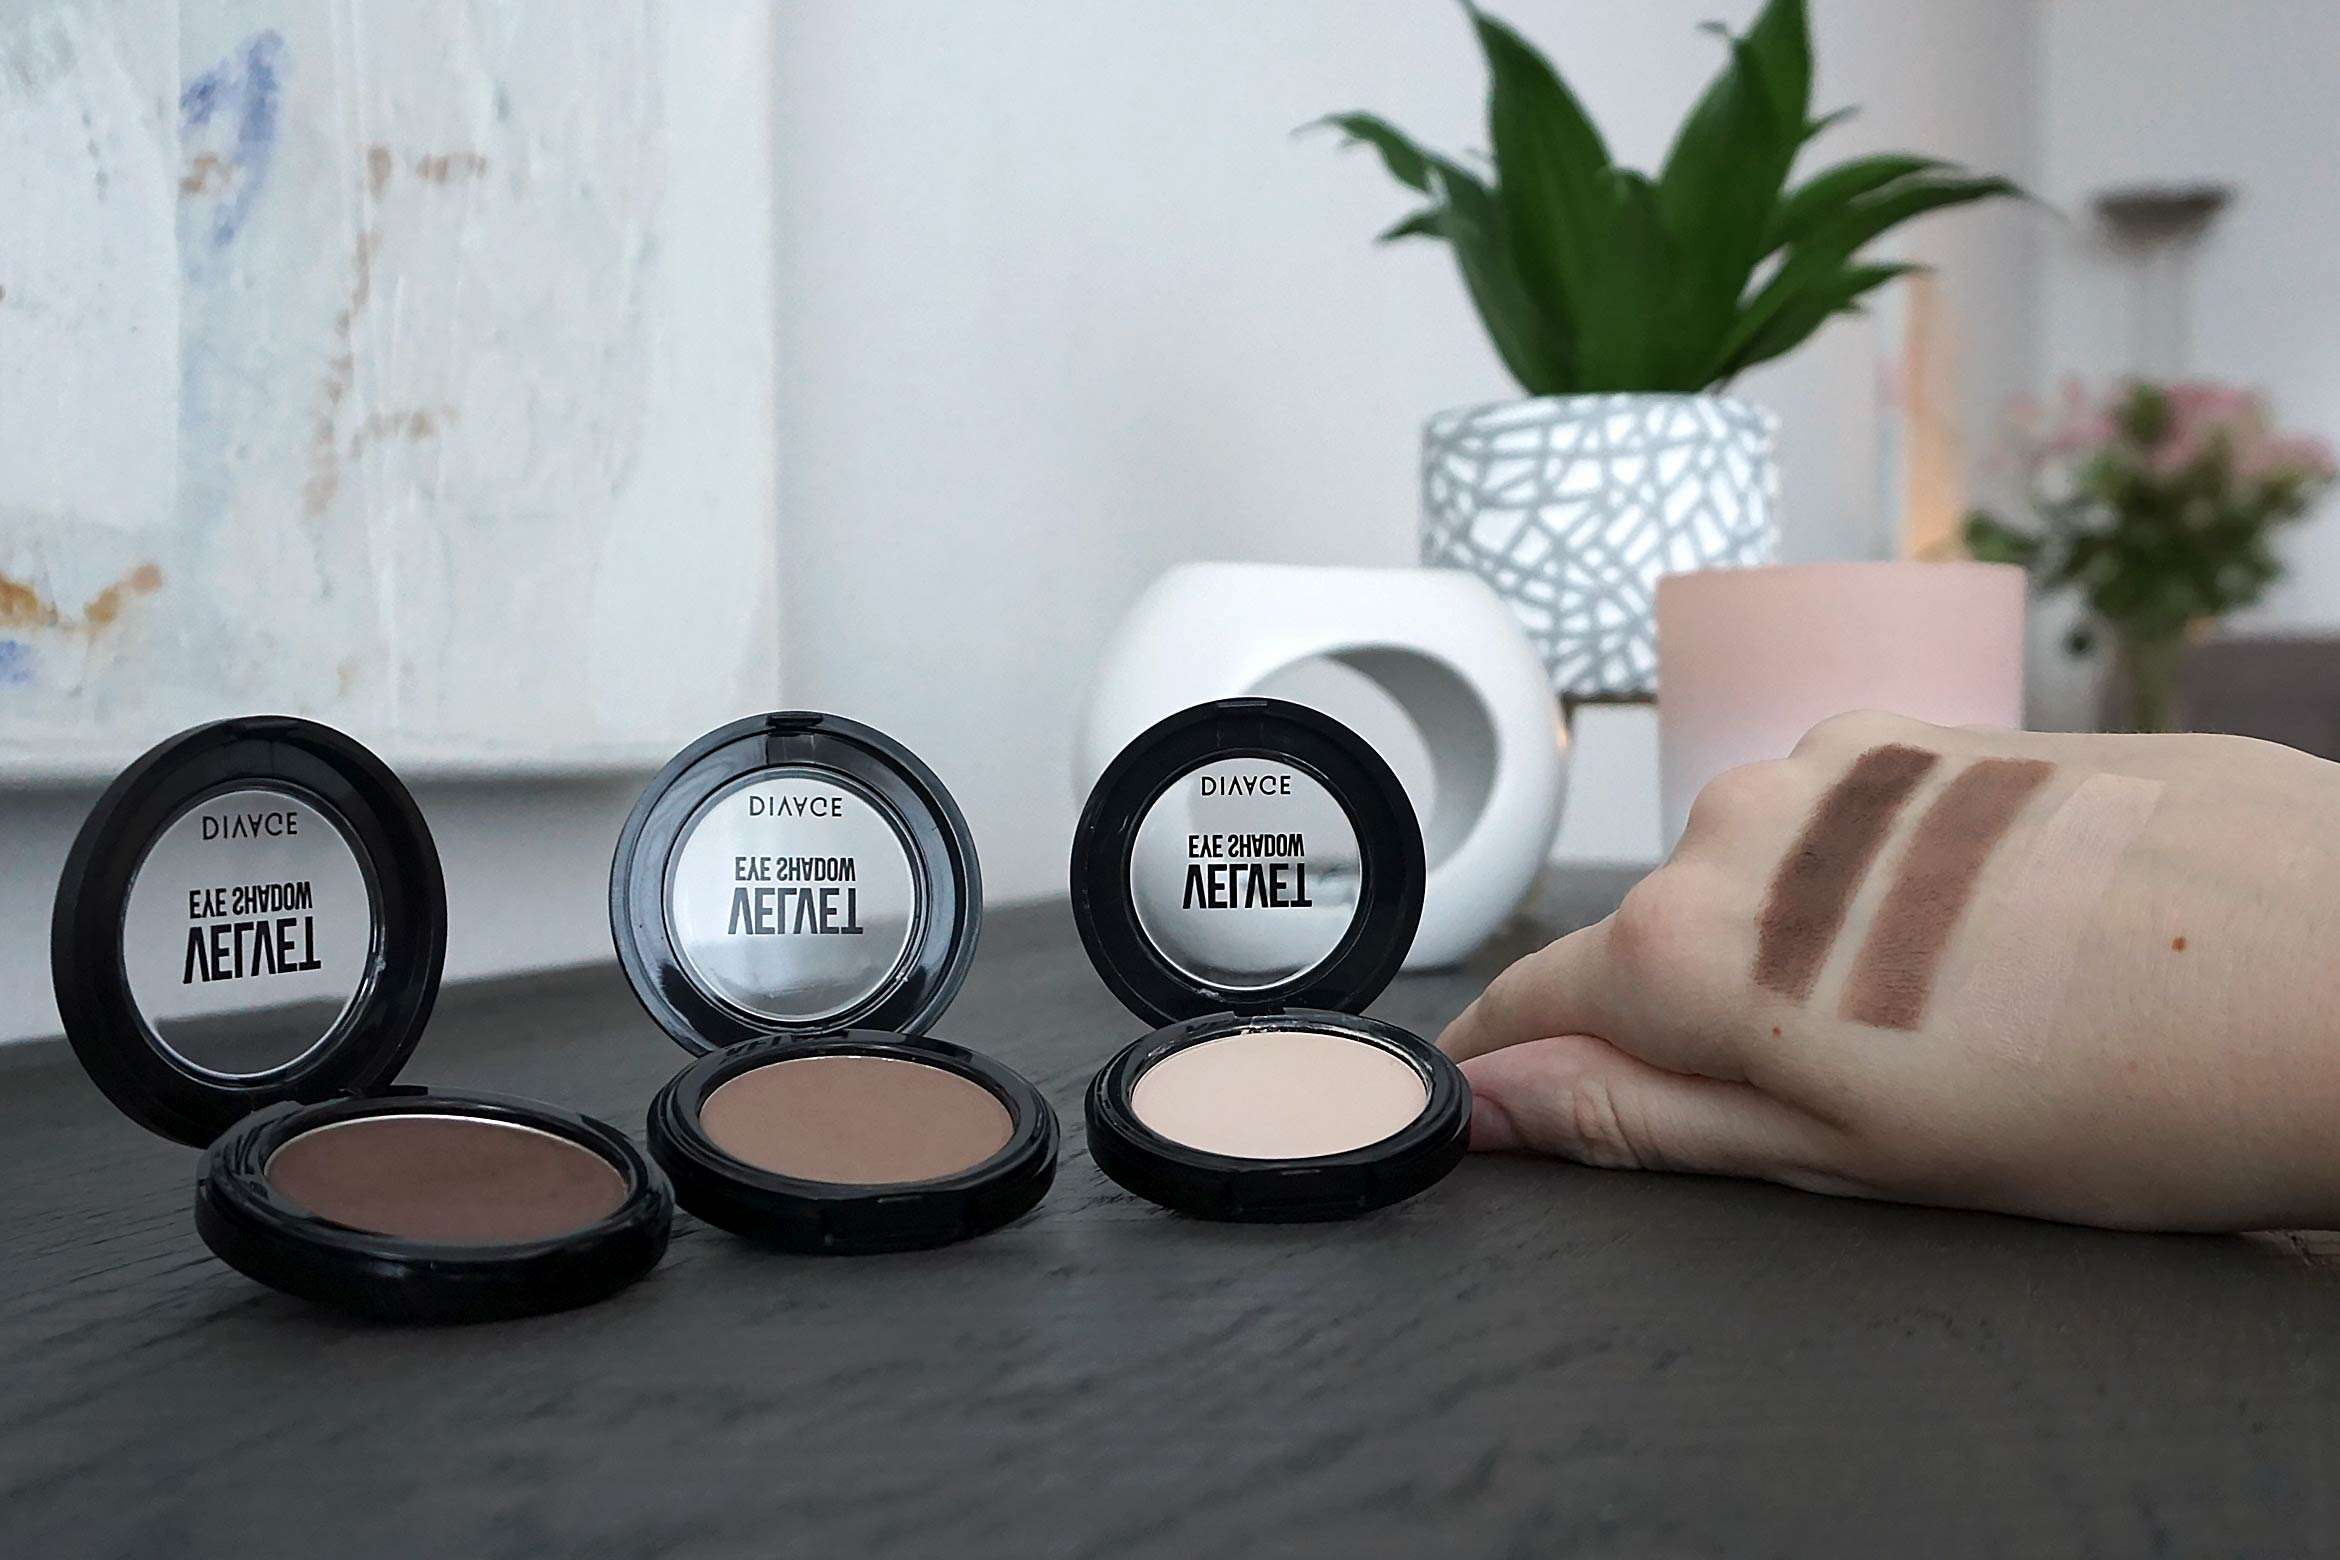 divage velvet eye shadow swatch review